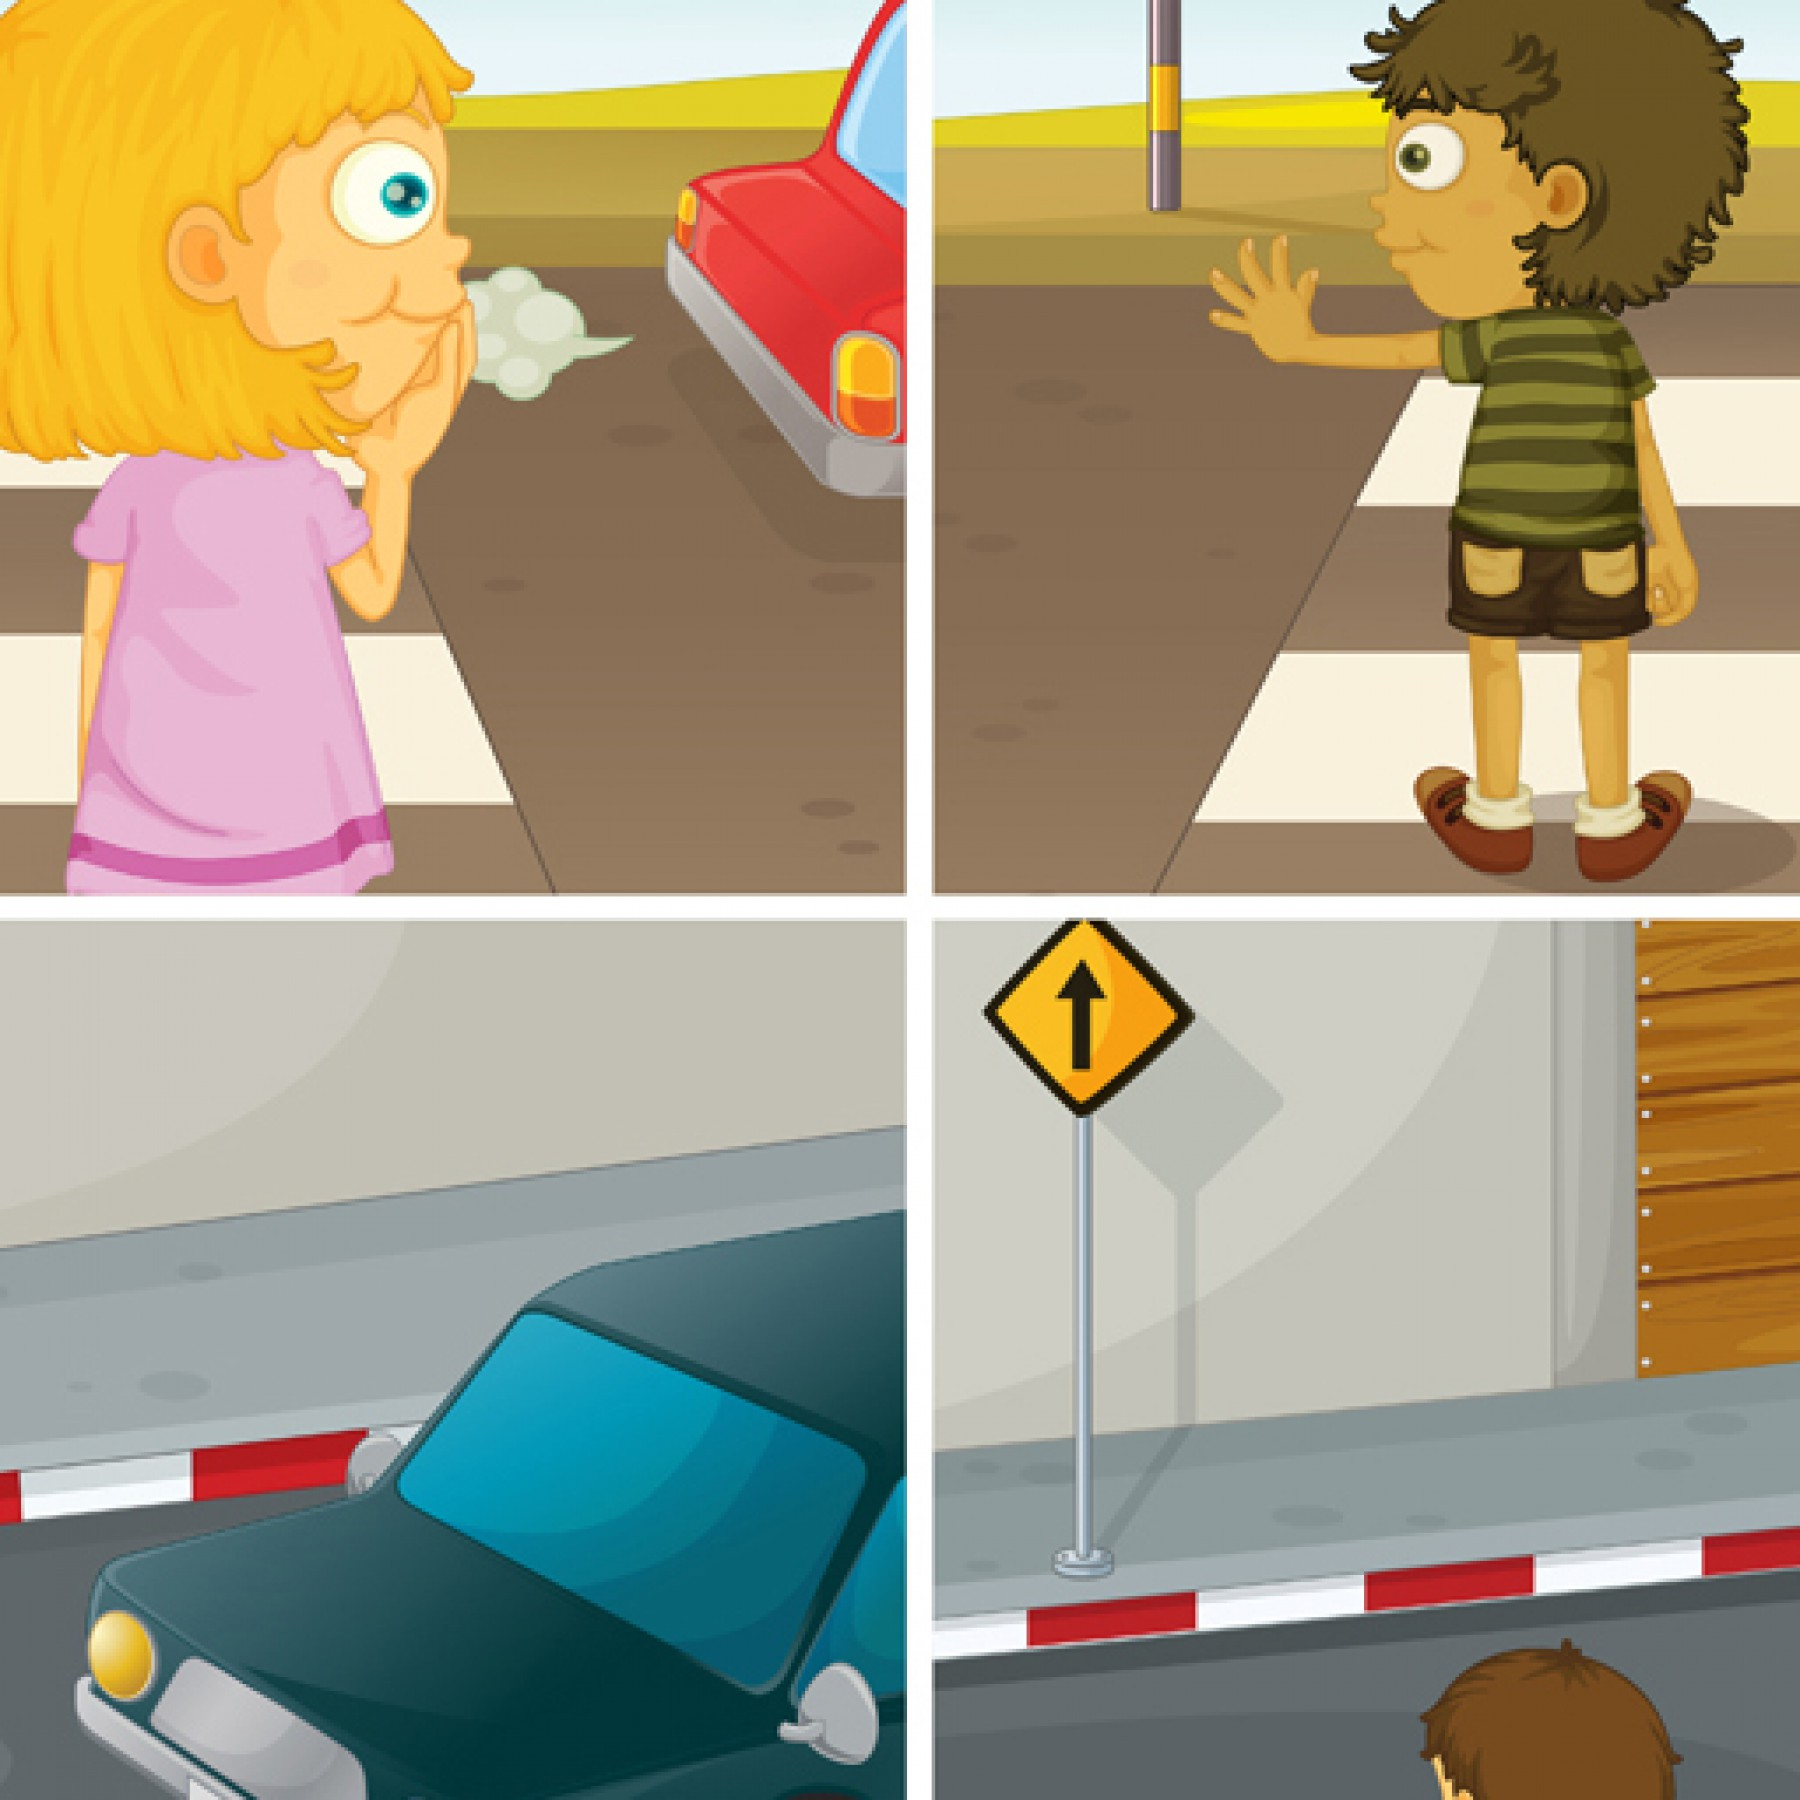 crossing-the-road-education-travel-kids-life-skills-transport-communication-main-location1